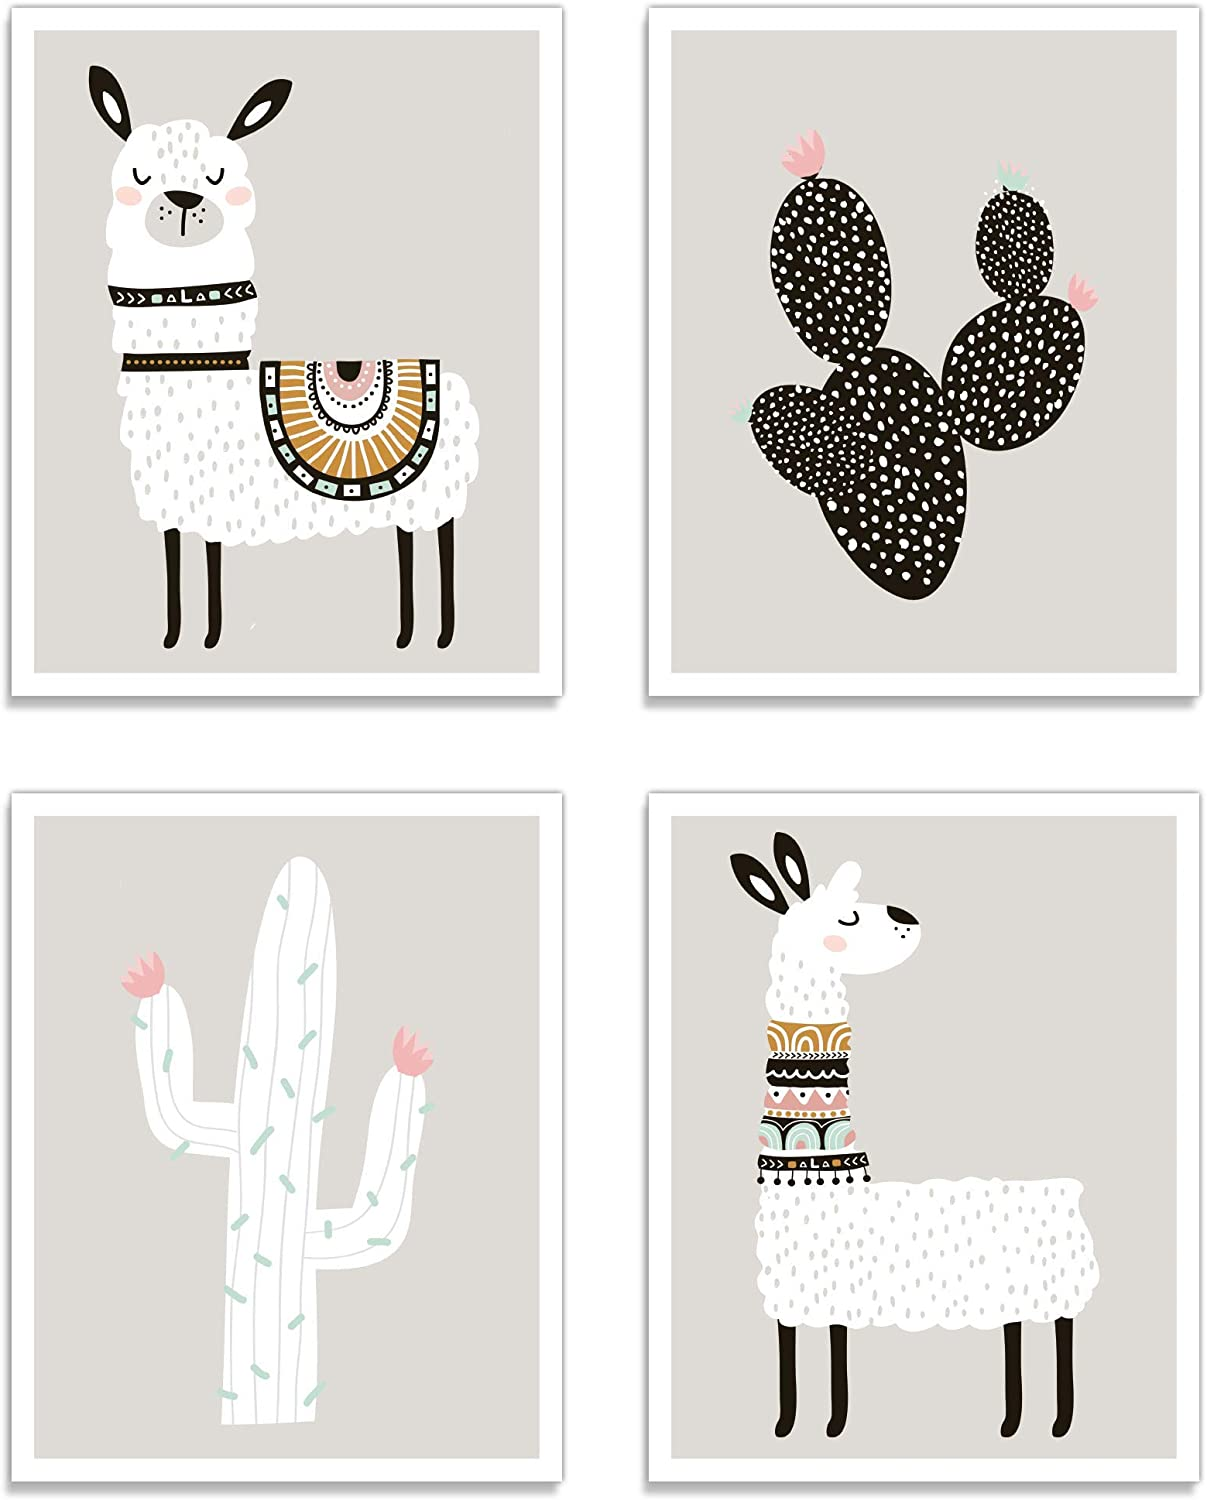 "Llama Wall Decor Art Posters - Set of 4 (11"" x 14"") Professional Grade Prints (Llama & Cactus) for Baby Room, Boy/Girl Room, Kids, Nursery Room Decor, Playroom, by Kindred Sol Collective"